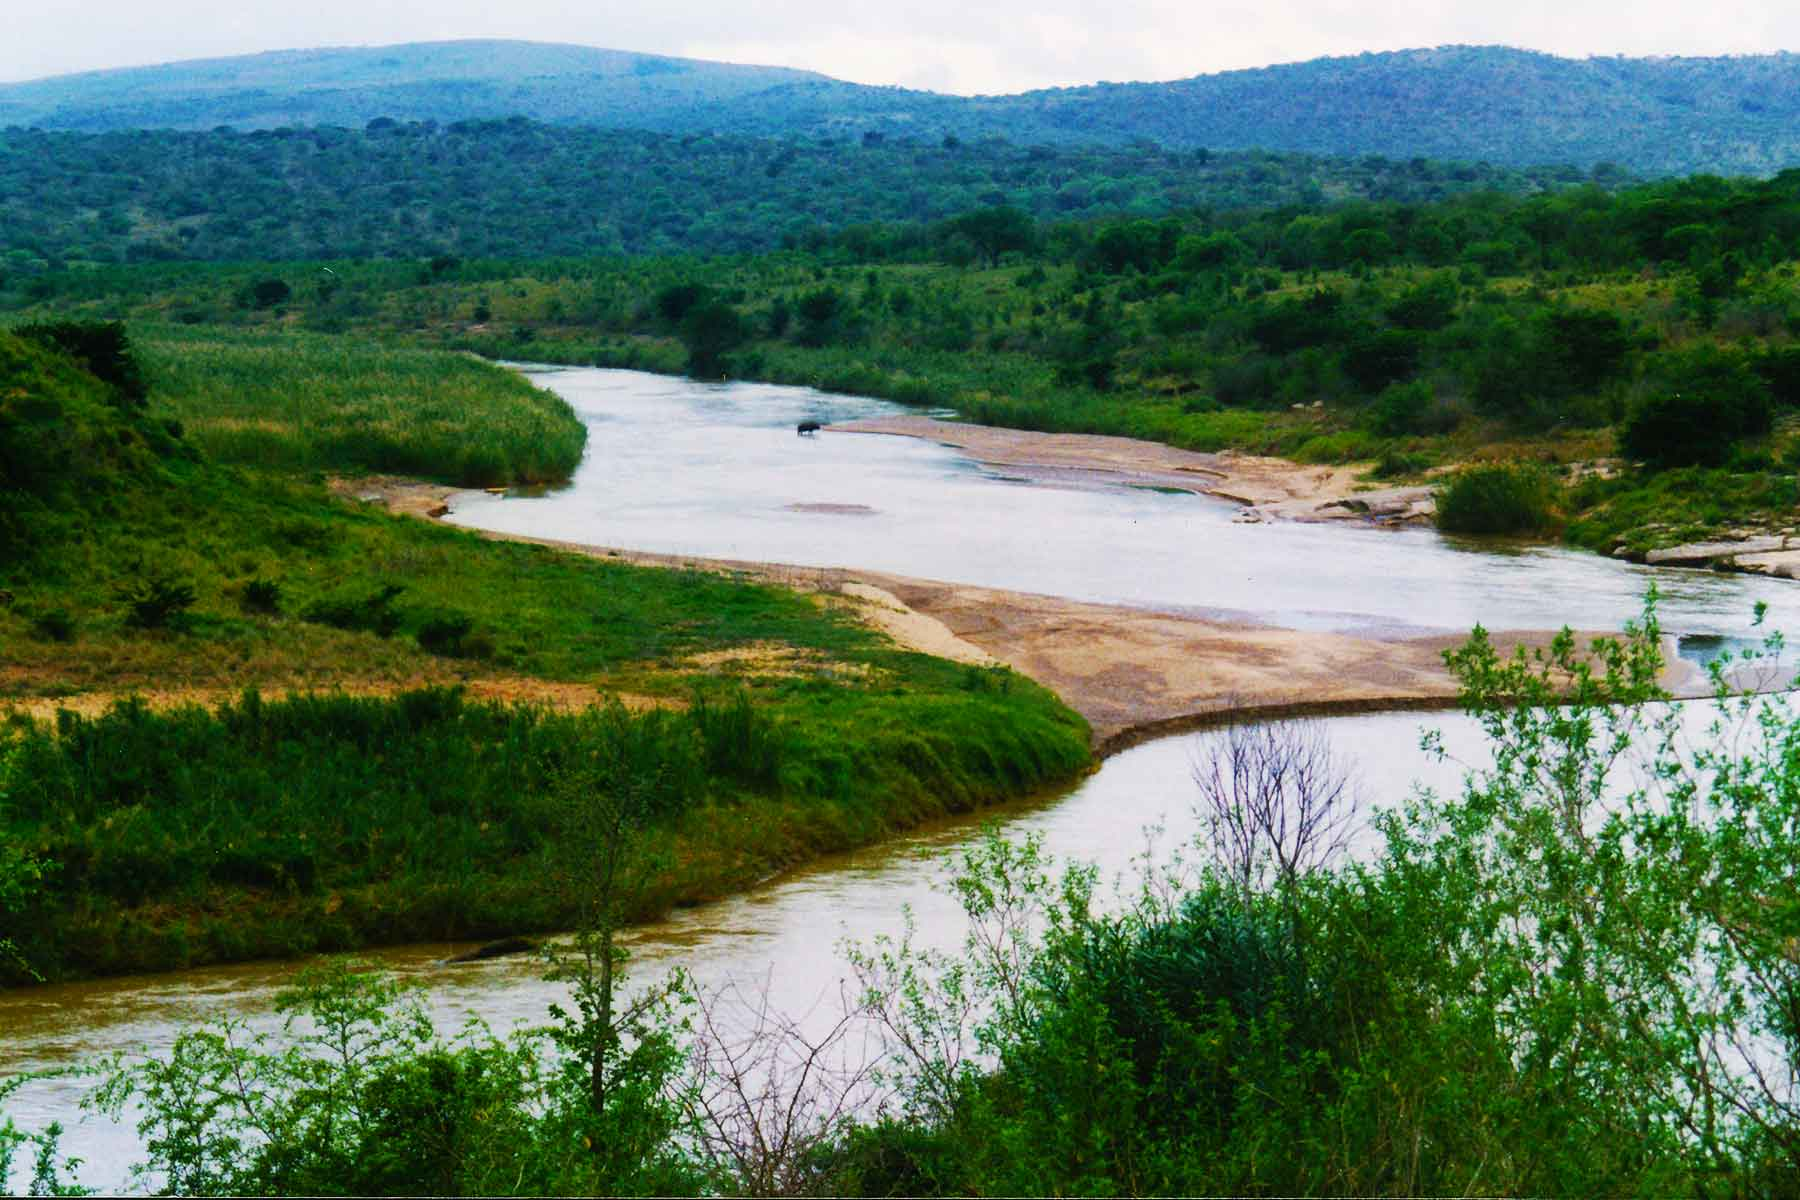 Umfolozi River - Hluhluwe-Umfolozi Game Reserve - Steven Andrew Martin - South Africa Photo Journal - international education online